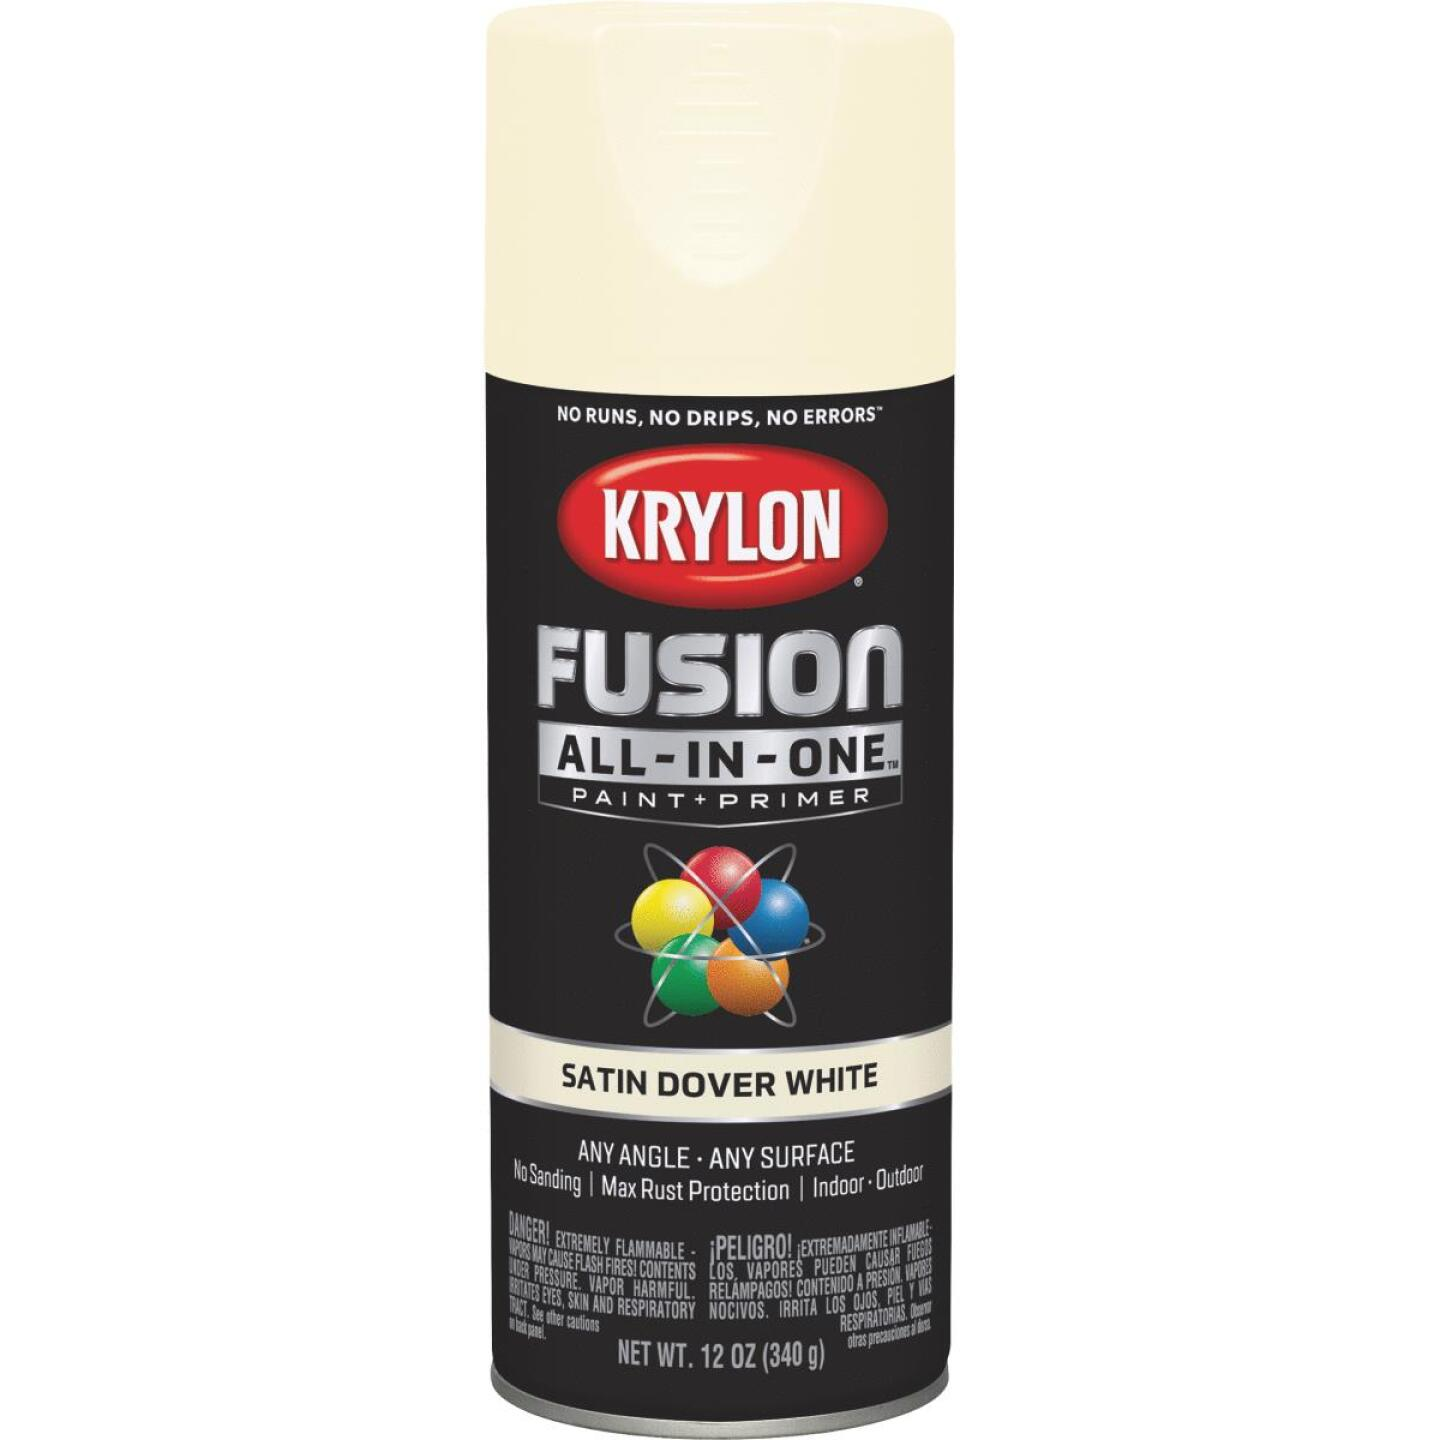 Krylon Fusion All-In-One Satin Spray Paint & Primer, Dover White Image 1